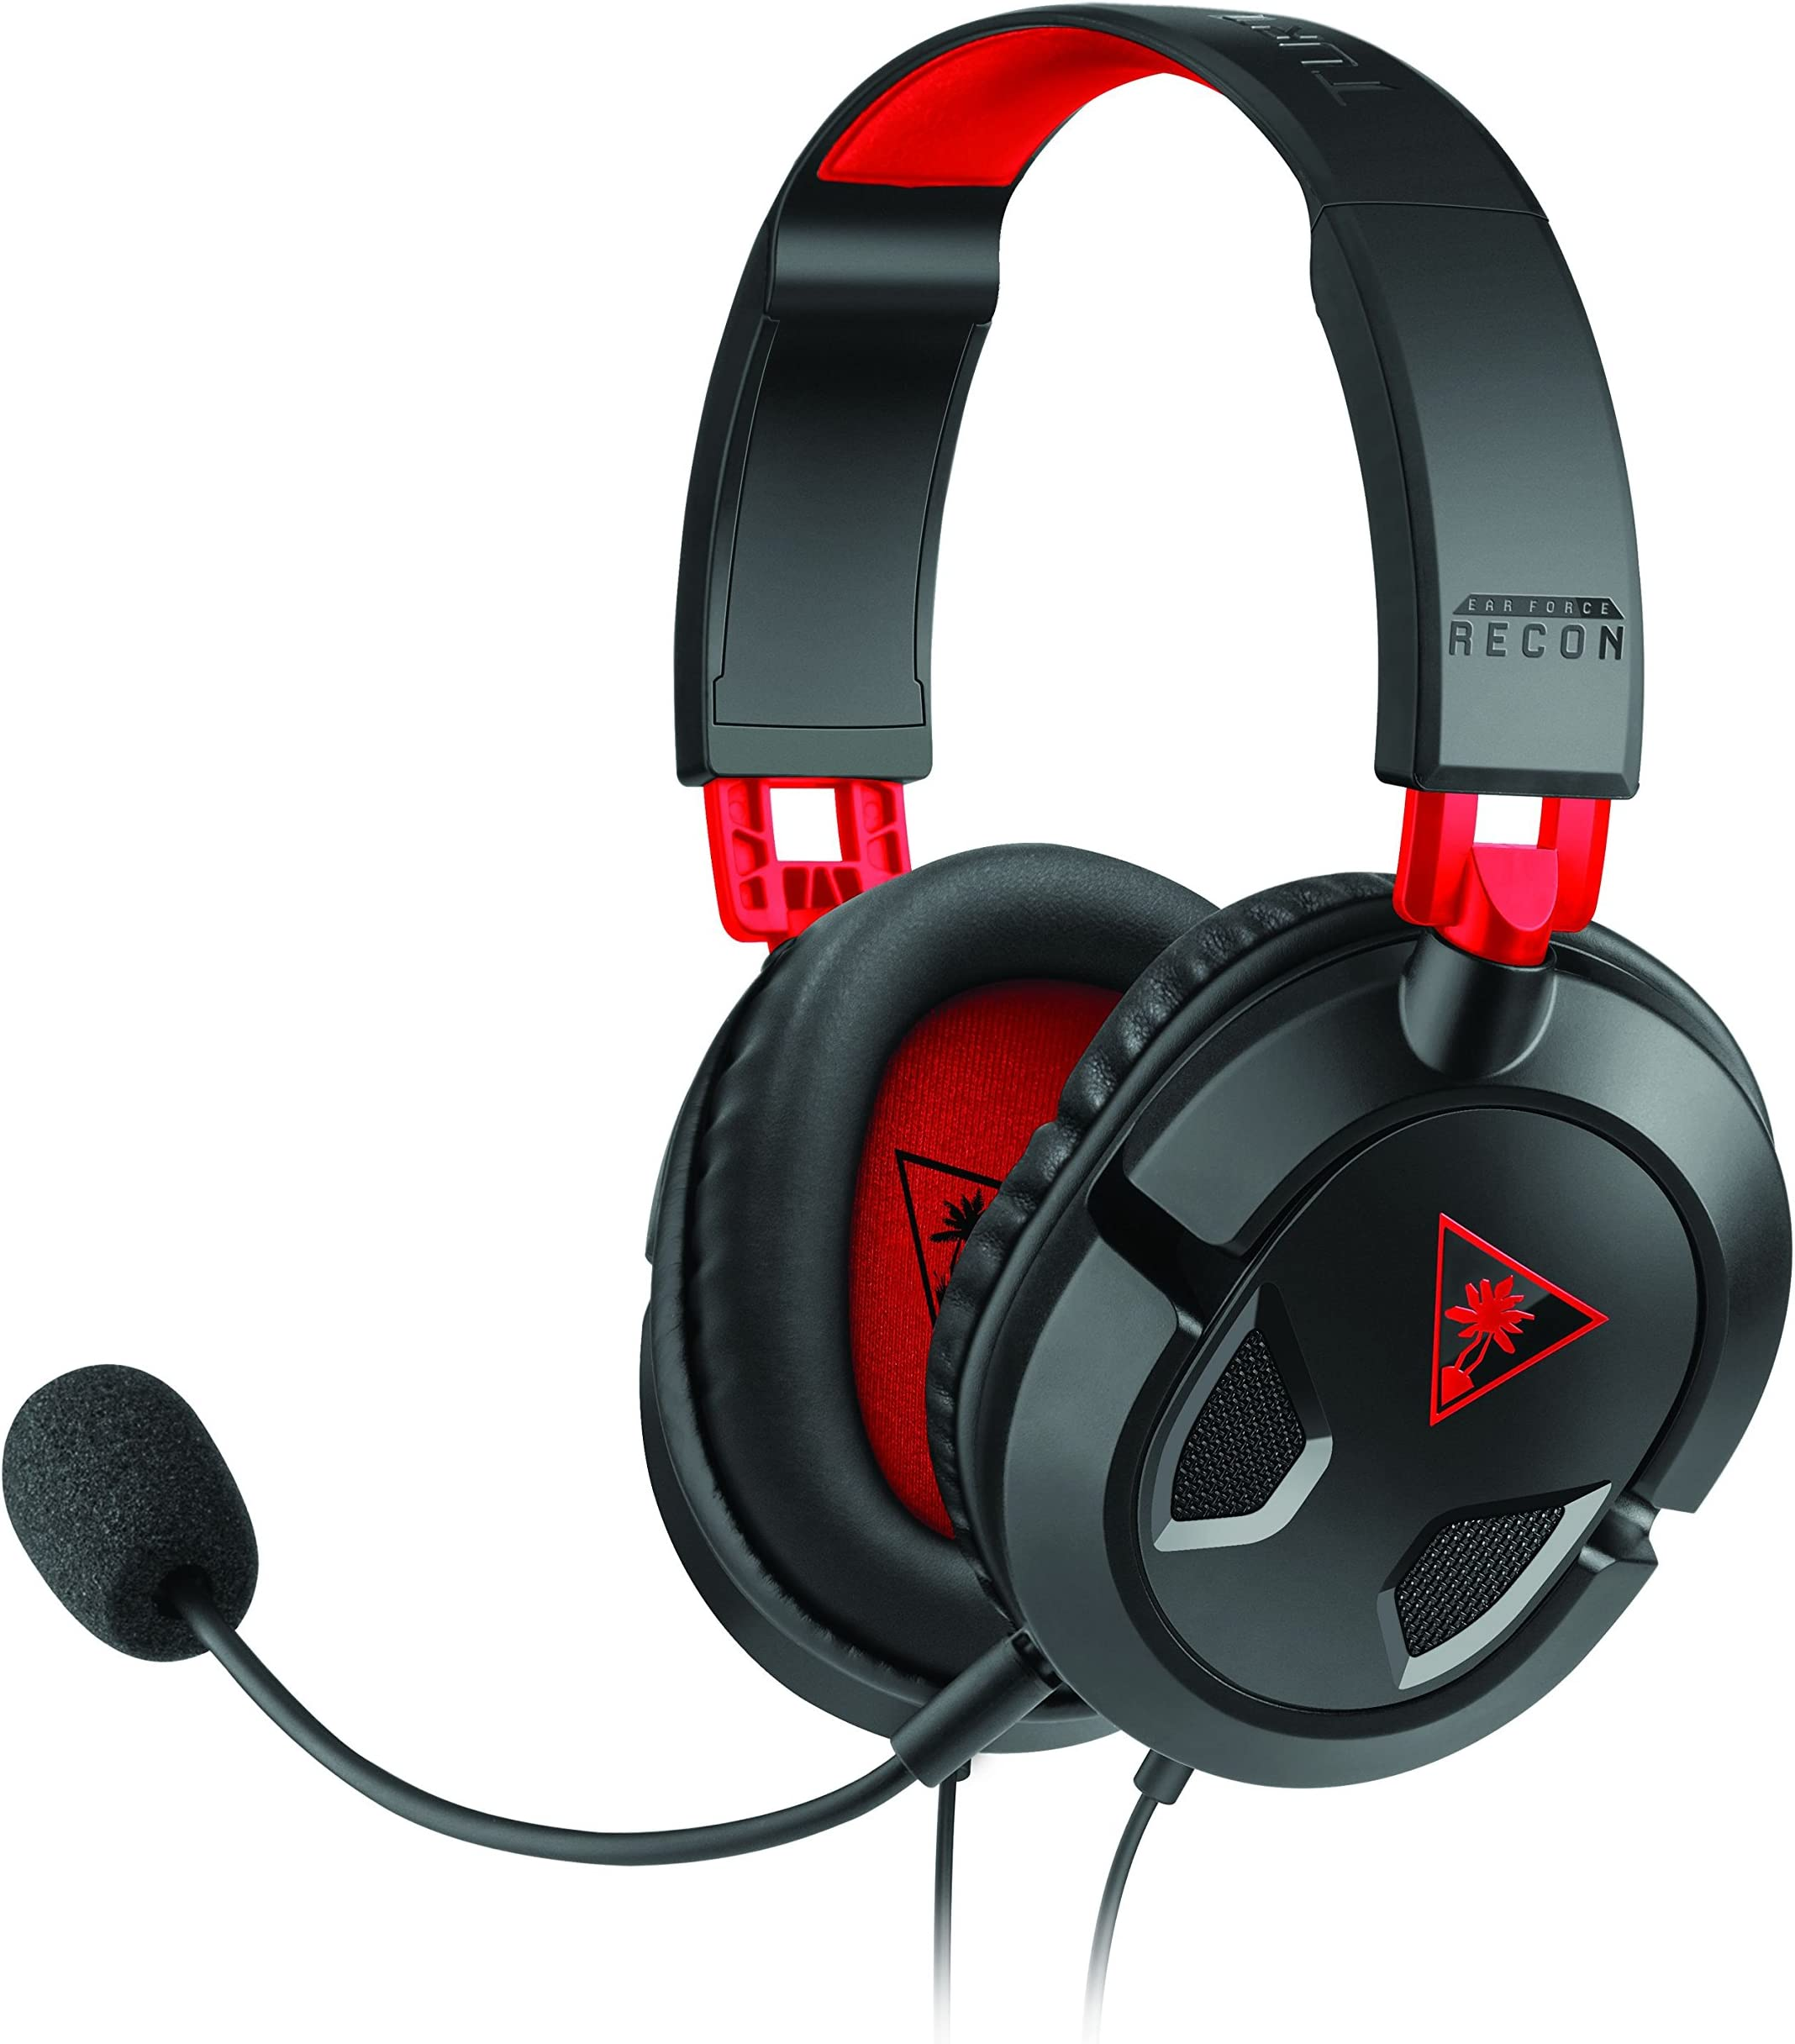 Turlte Beach  Ear Force Recon 50